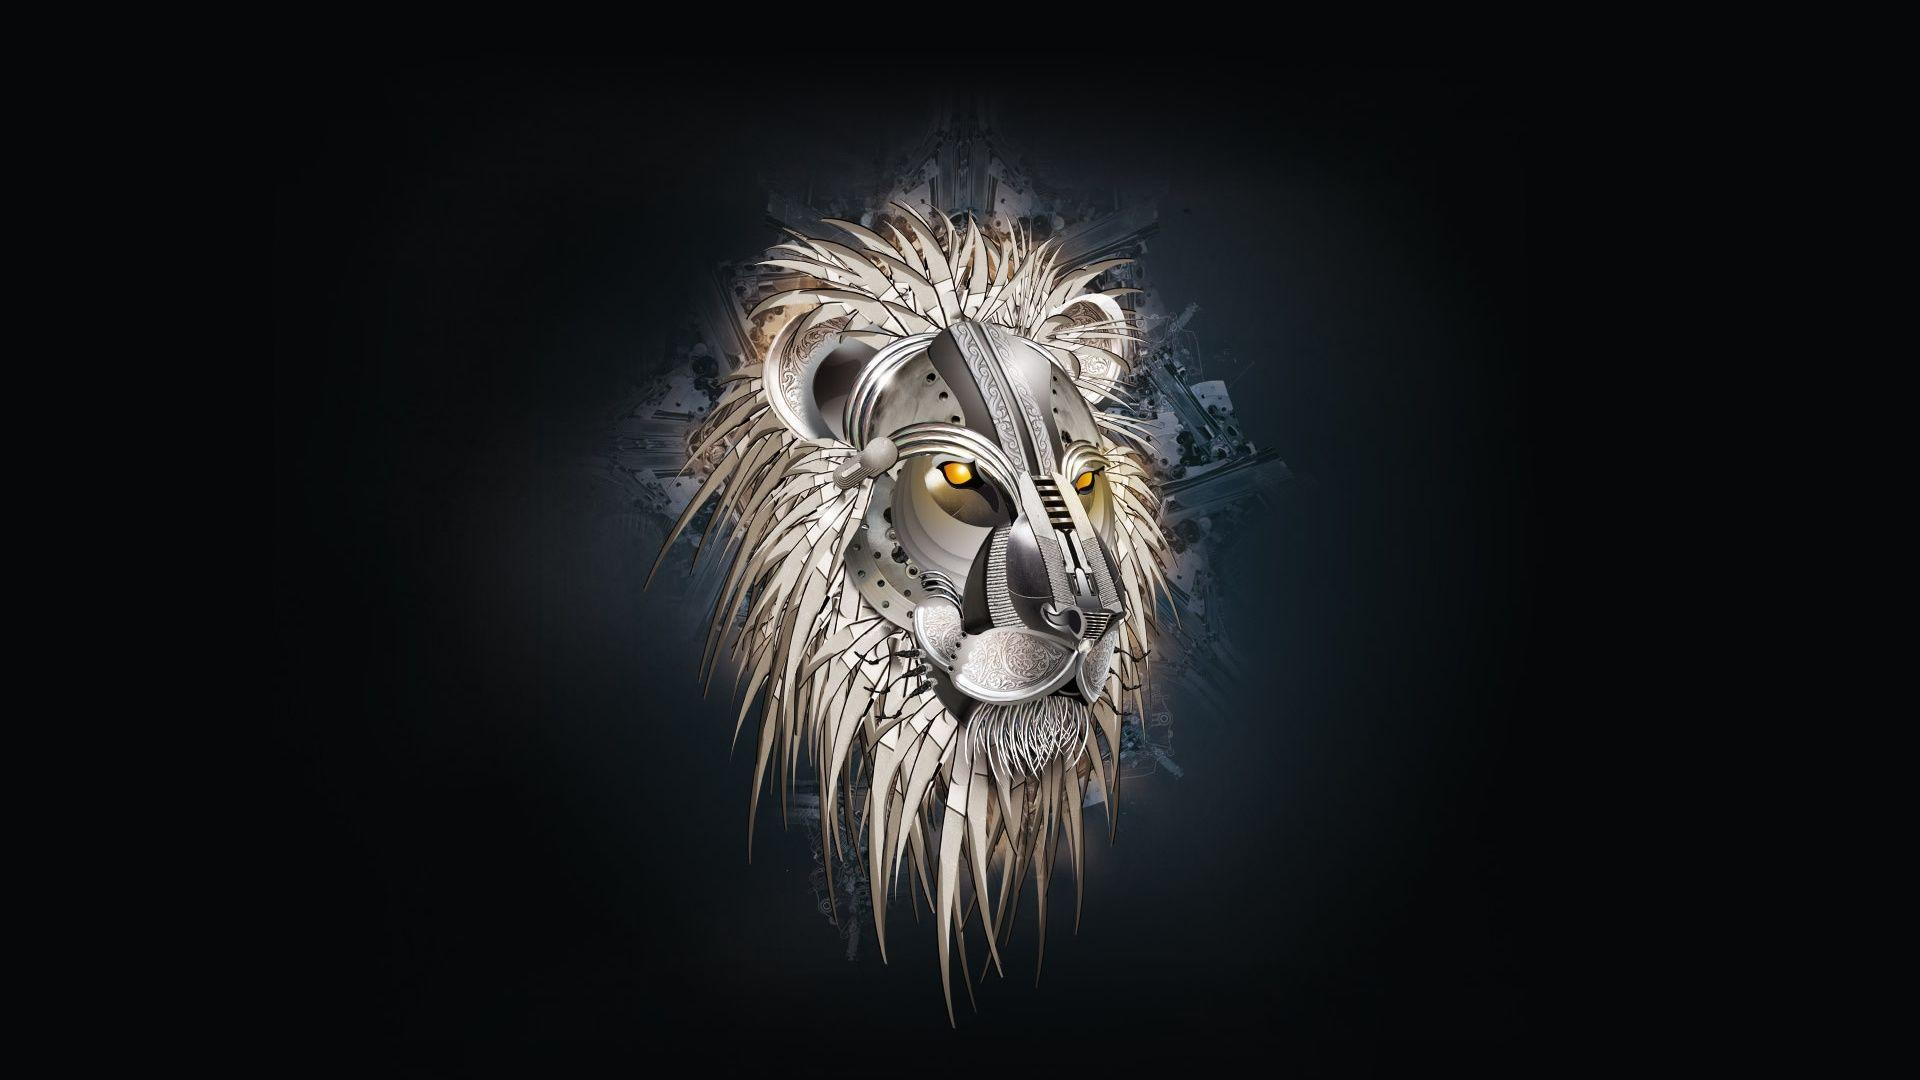 hd wallpapers creative lion